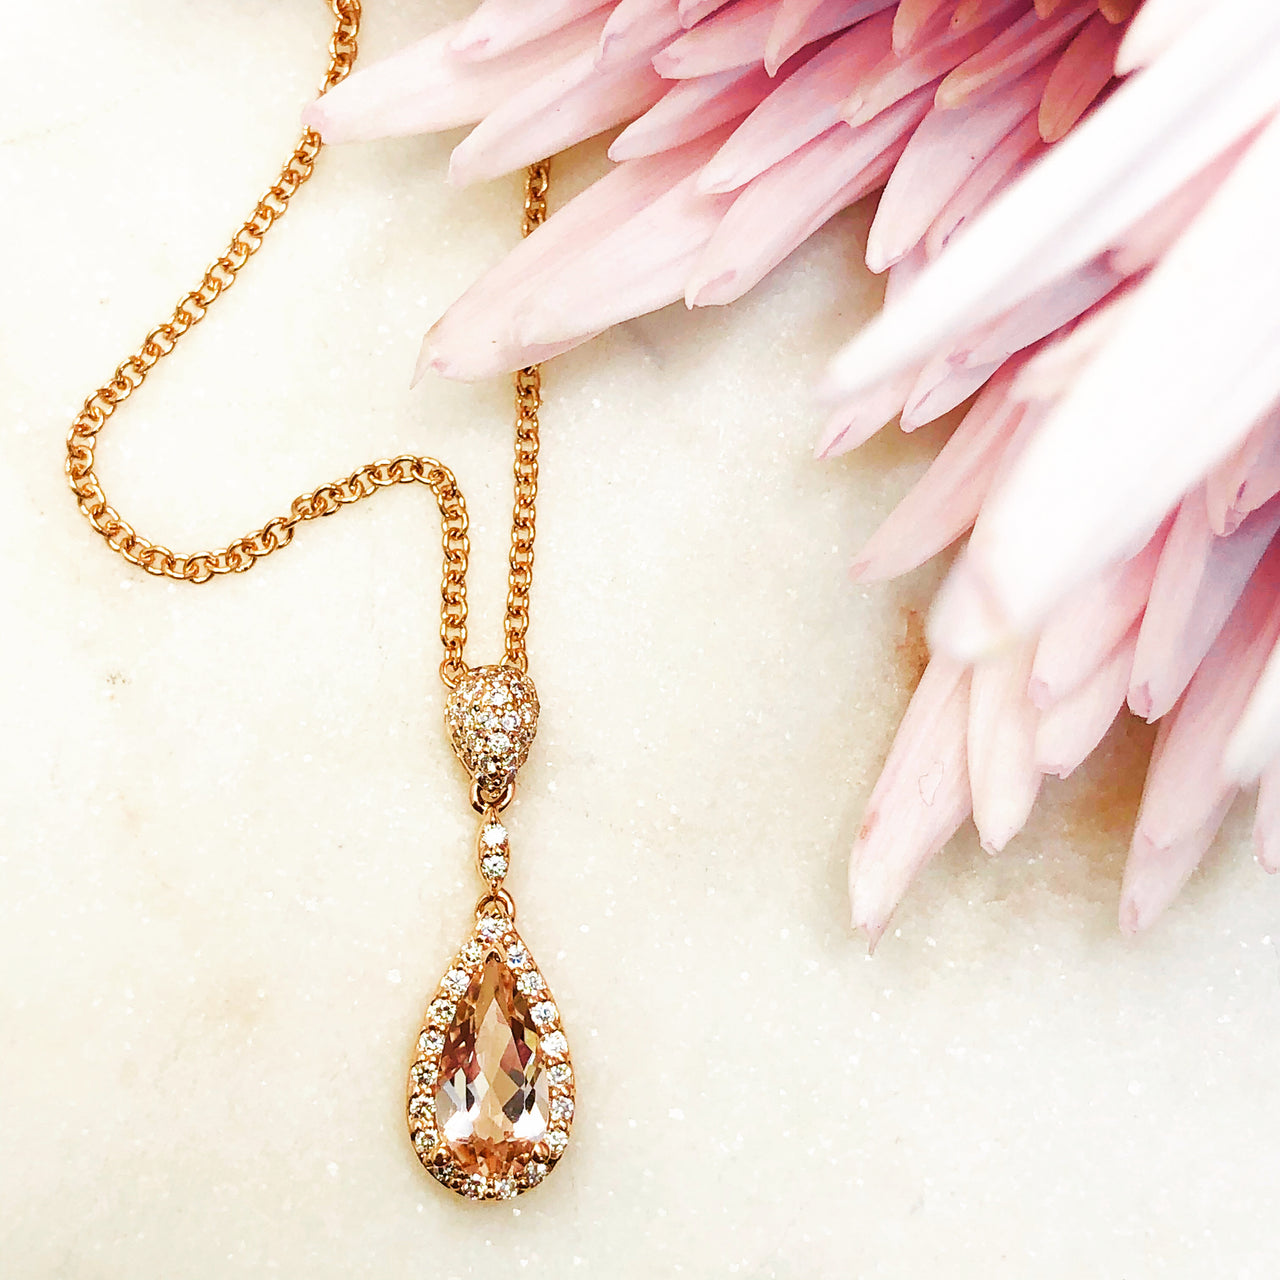 14K Rose Gold Morganite and Diamond Necklace.